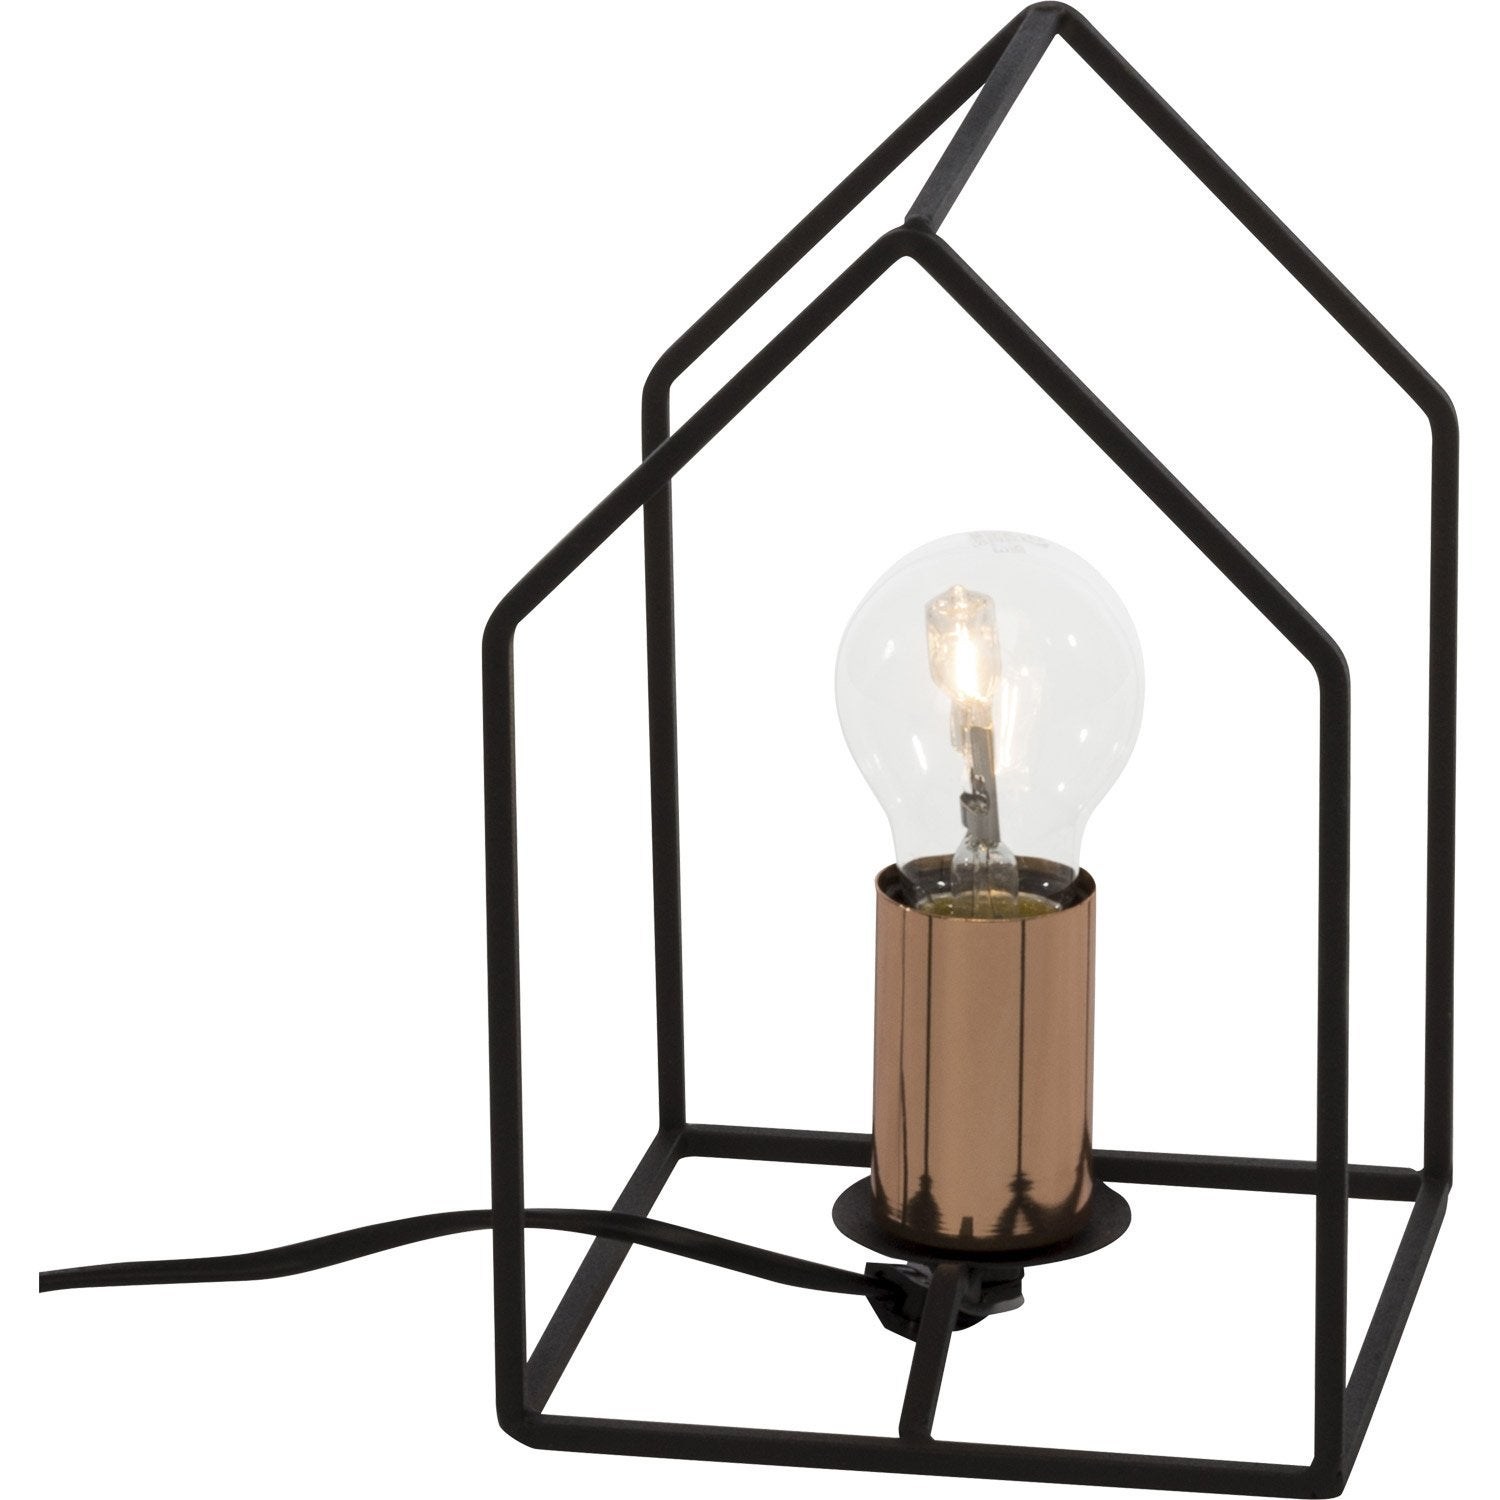 Lampe Design Metal Noir Cuivre Brilliant Home Leroy Merlin